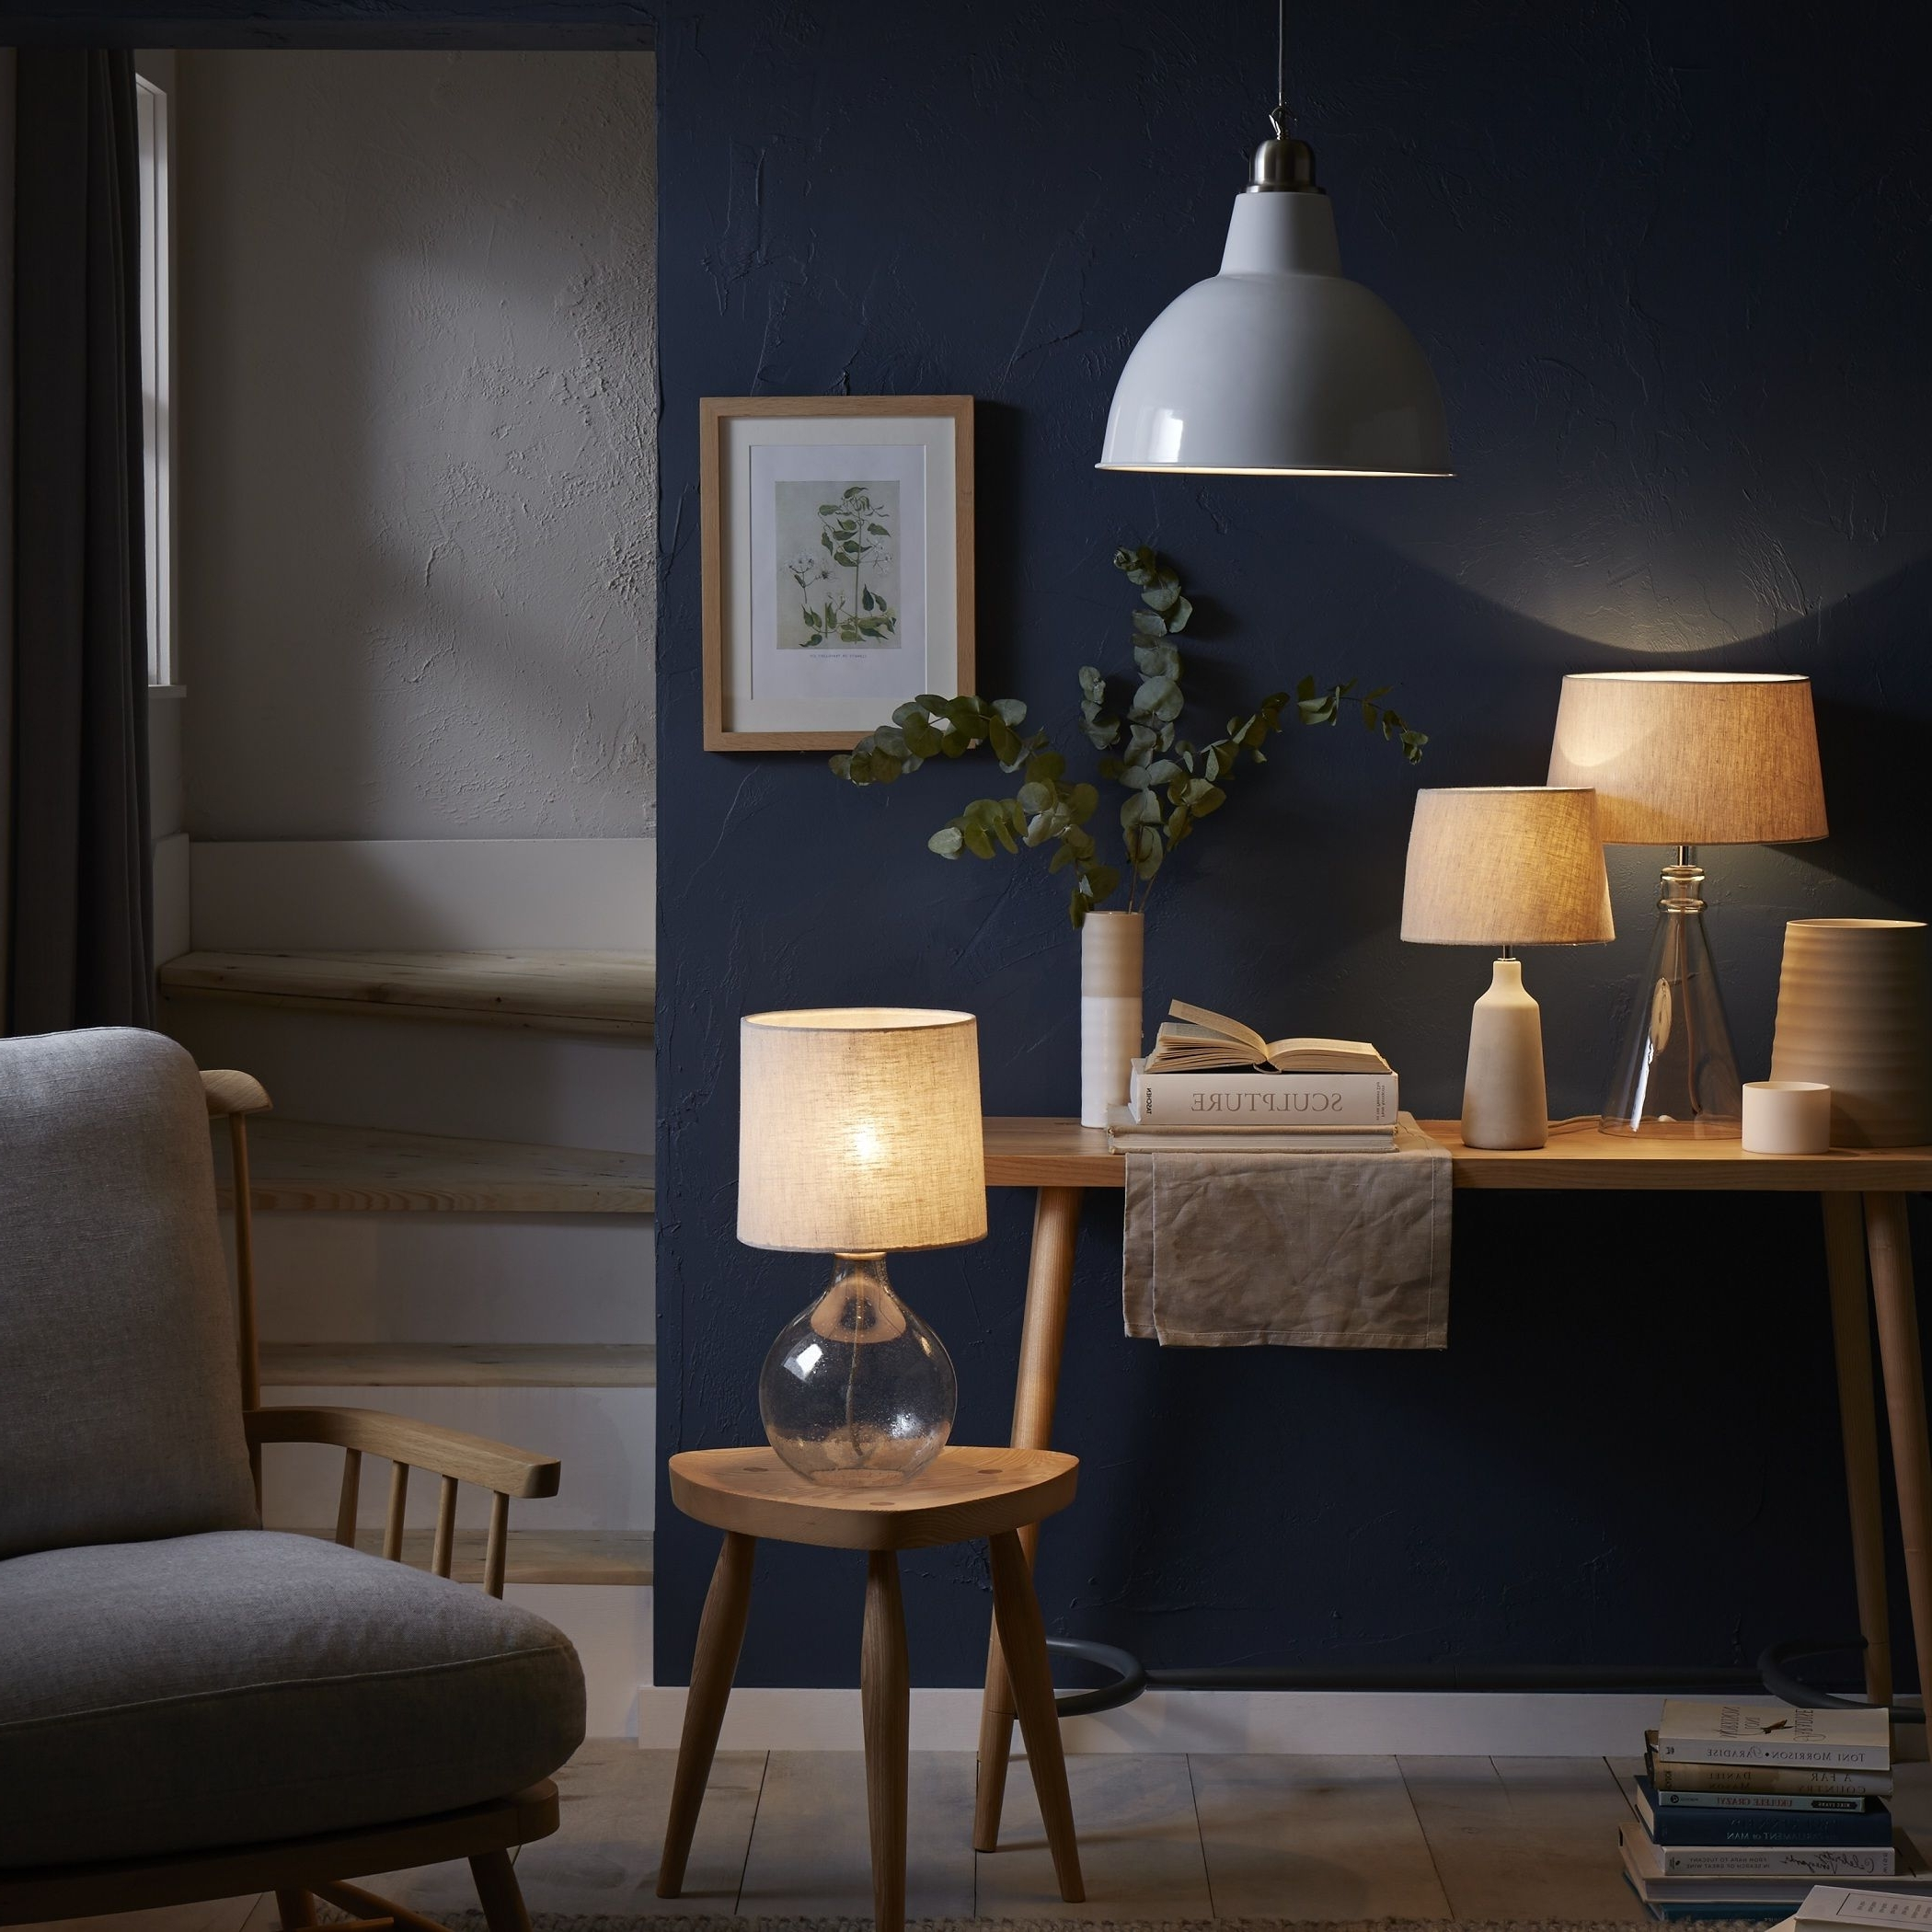 Glass Lamp John Lewis Displaying Gallery Of John Lewis Living Room Table Lamps View 6 Of